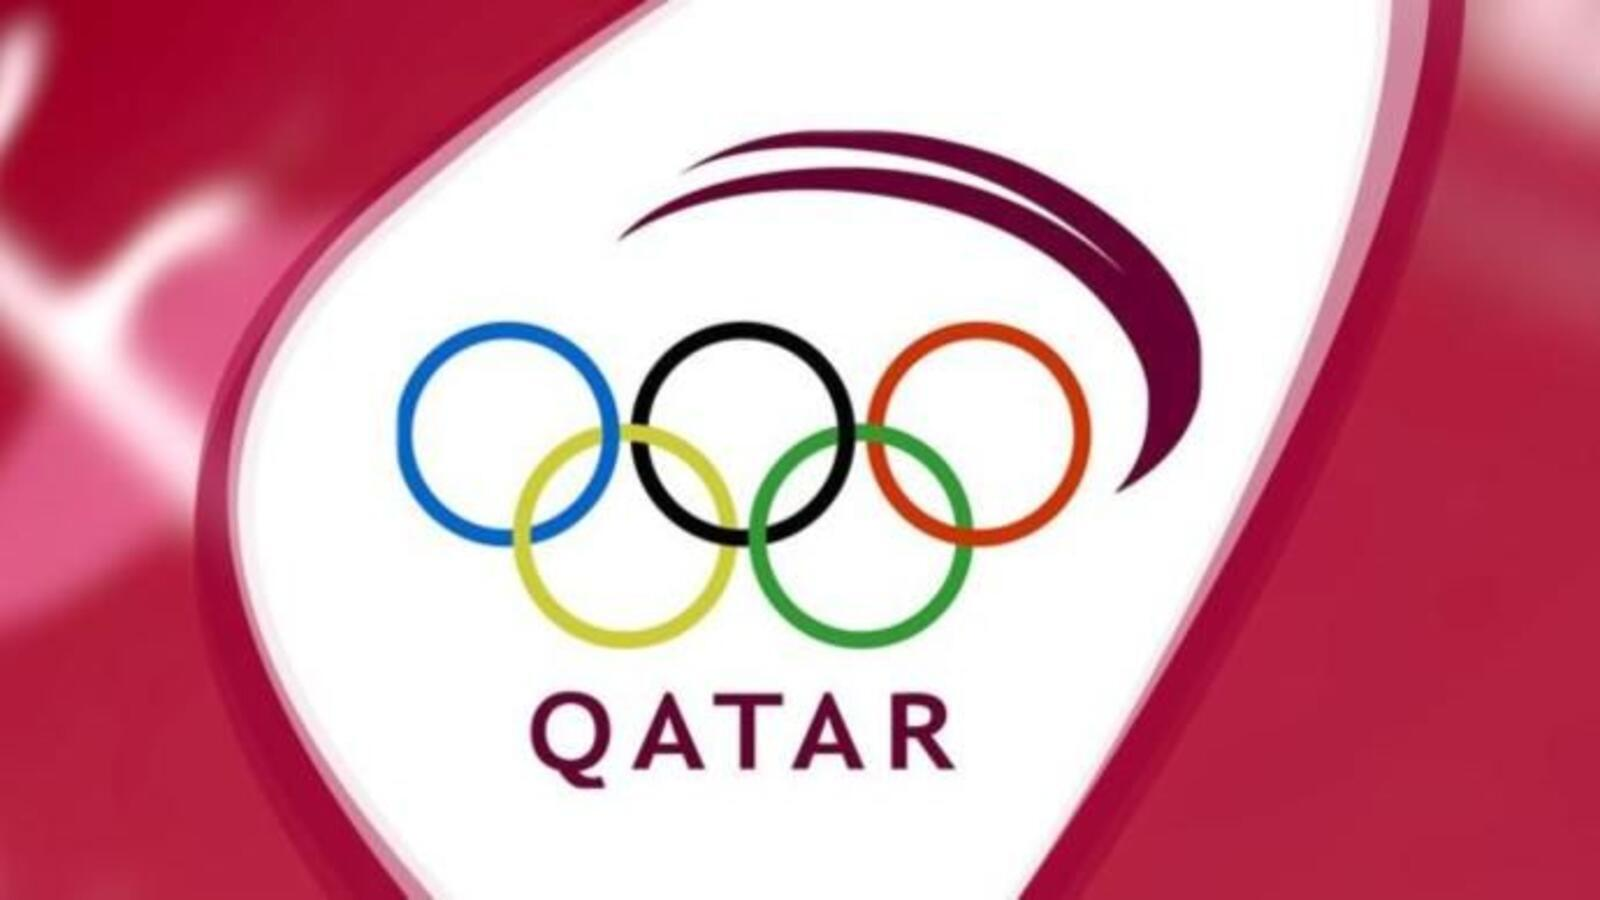 Photo of Qatar Olympic Committee Announces Resumption Of Sporting Activities After 20th July 2020